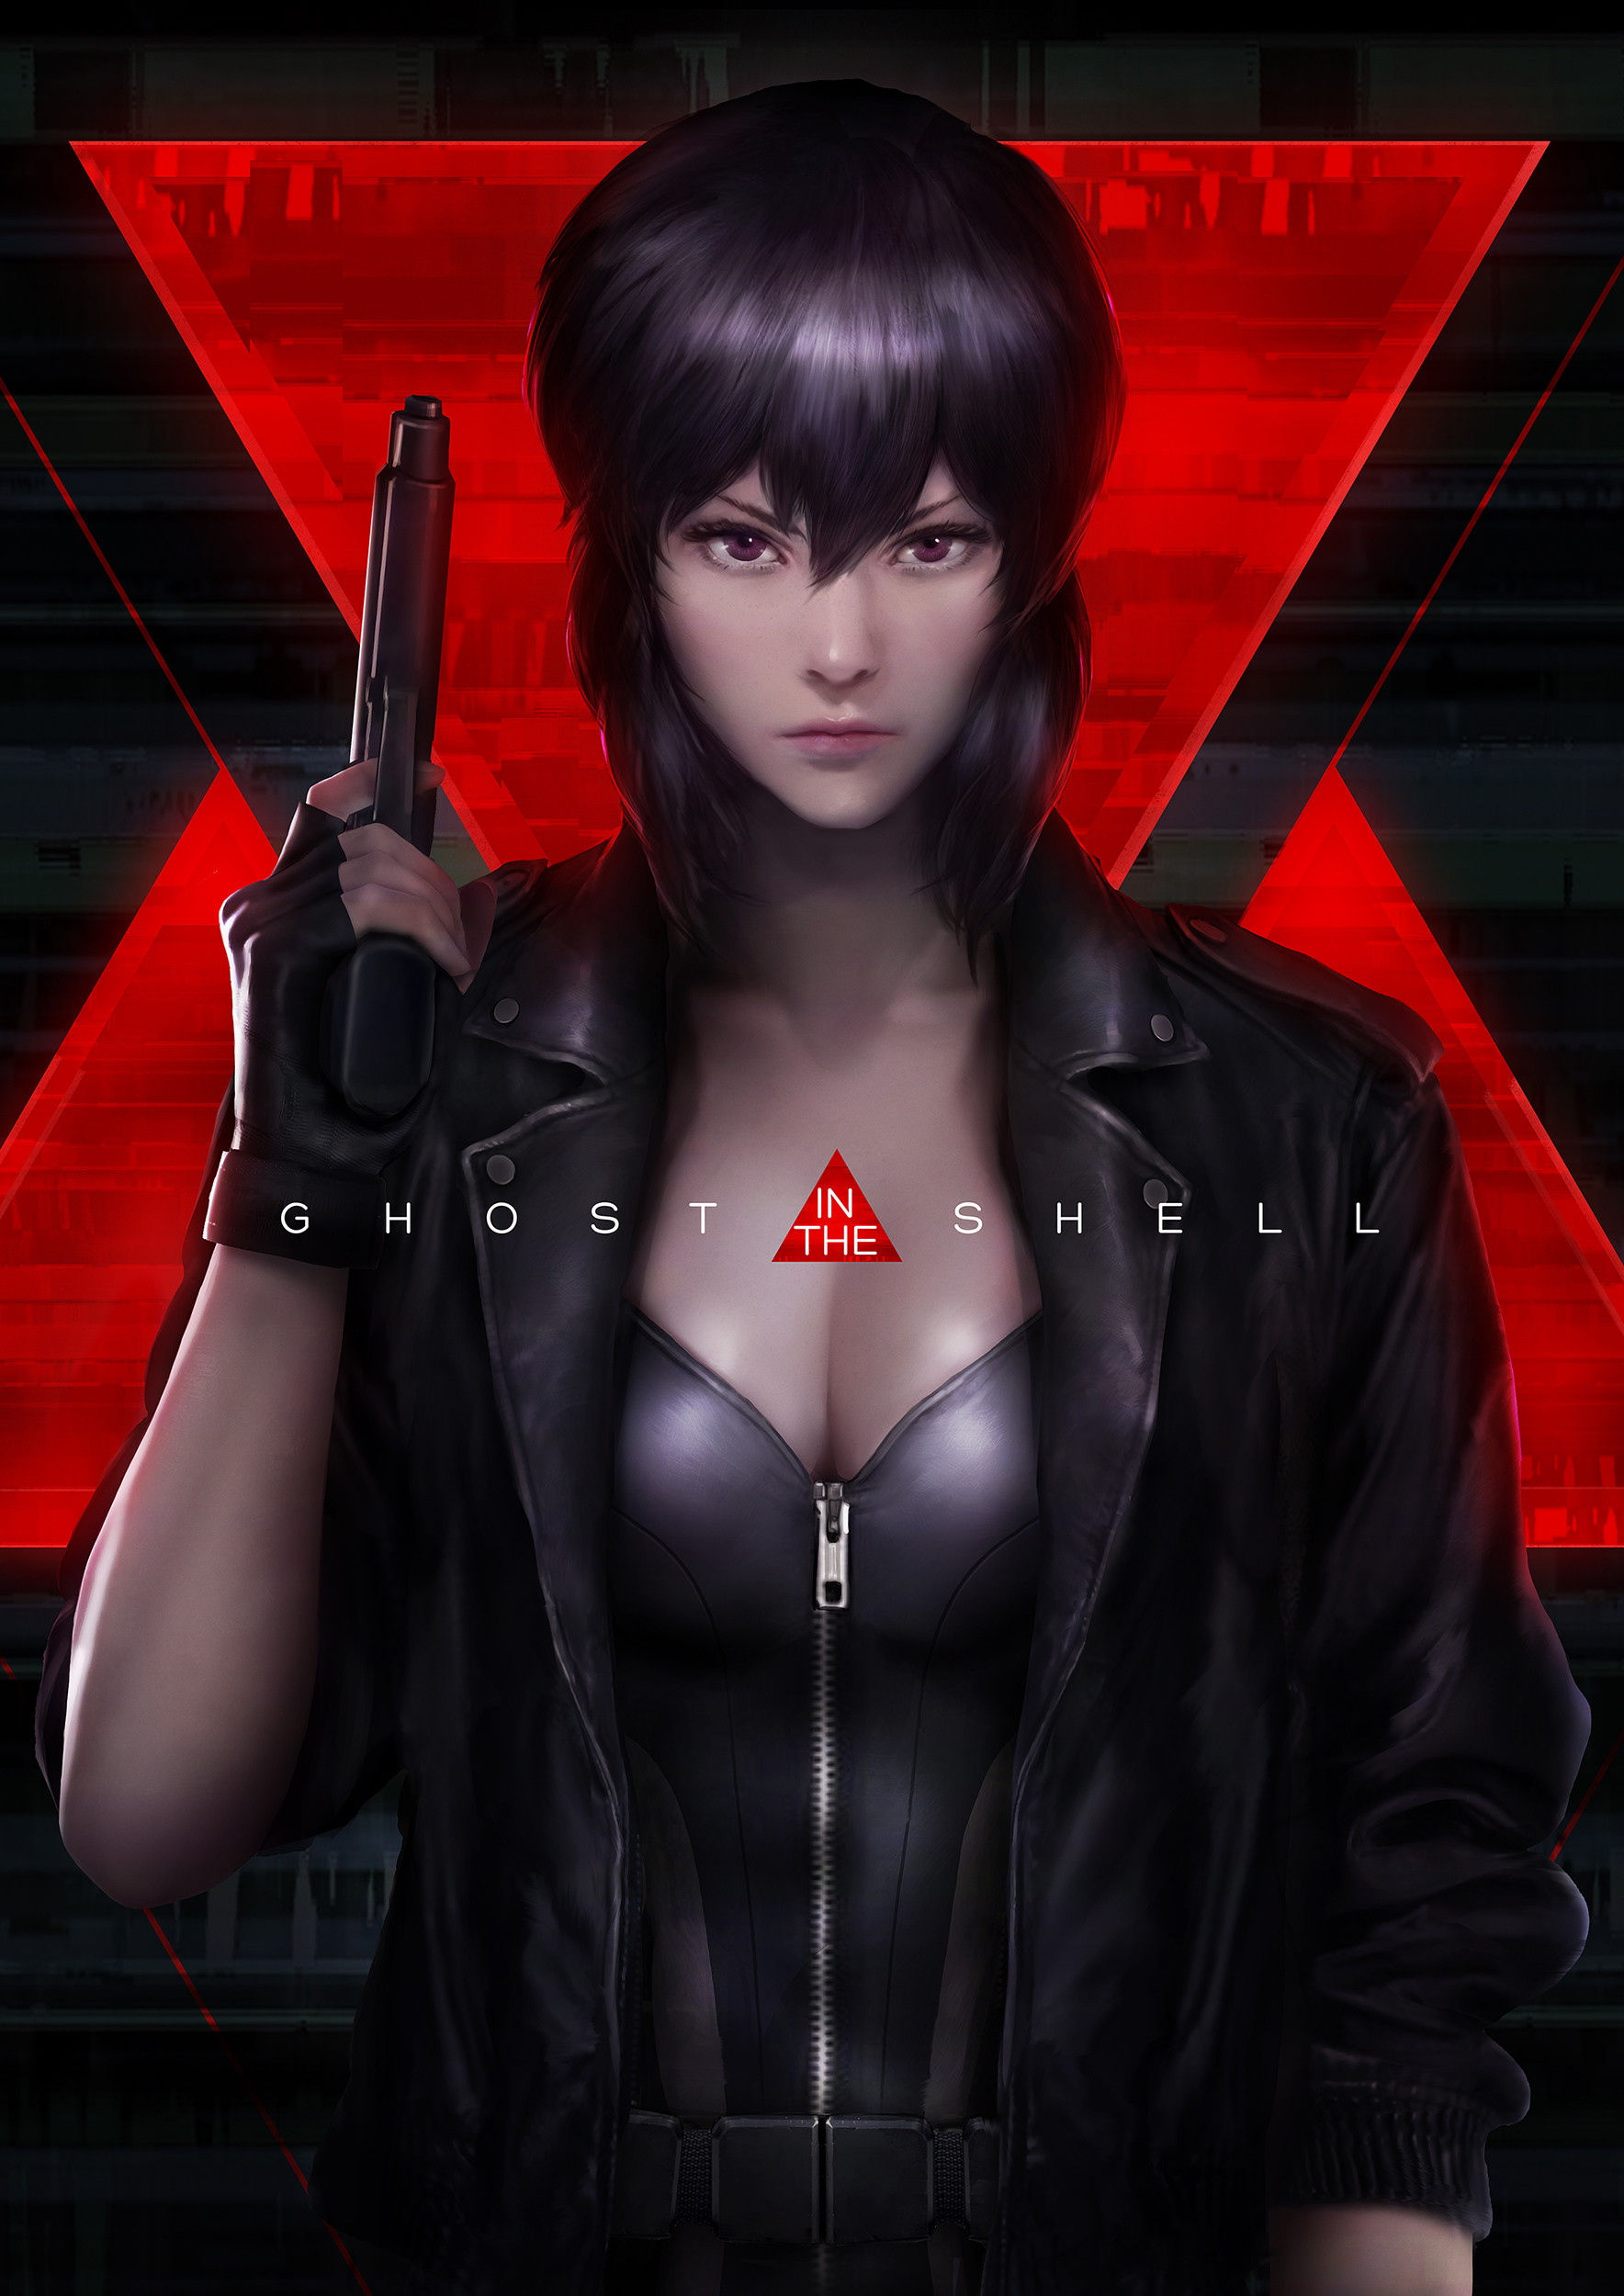 Inspiration hebdomadaire spéciale Ghost in the shell en digital painting